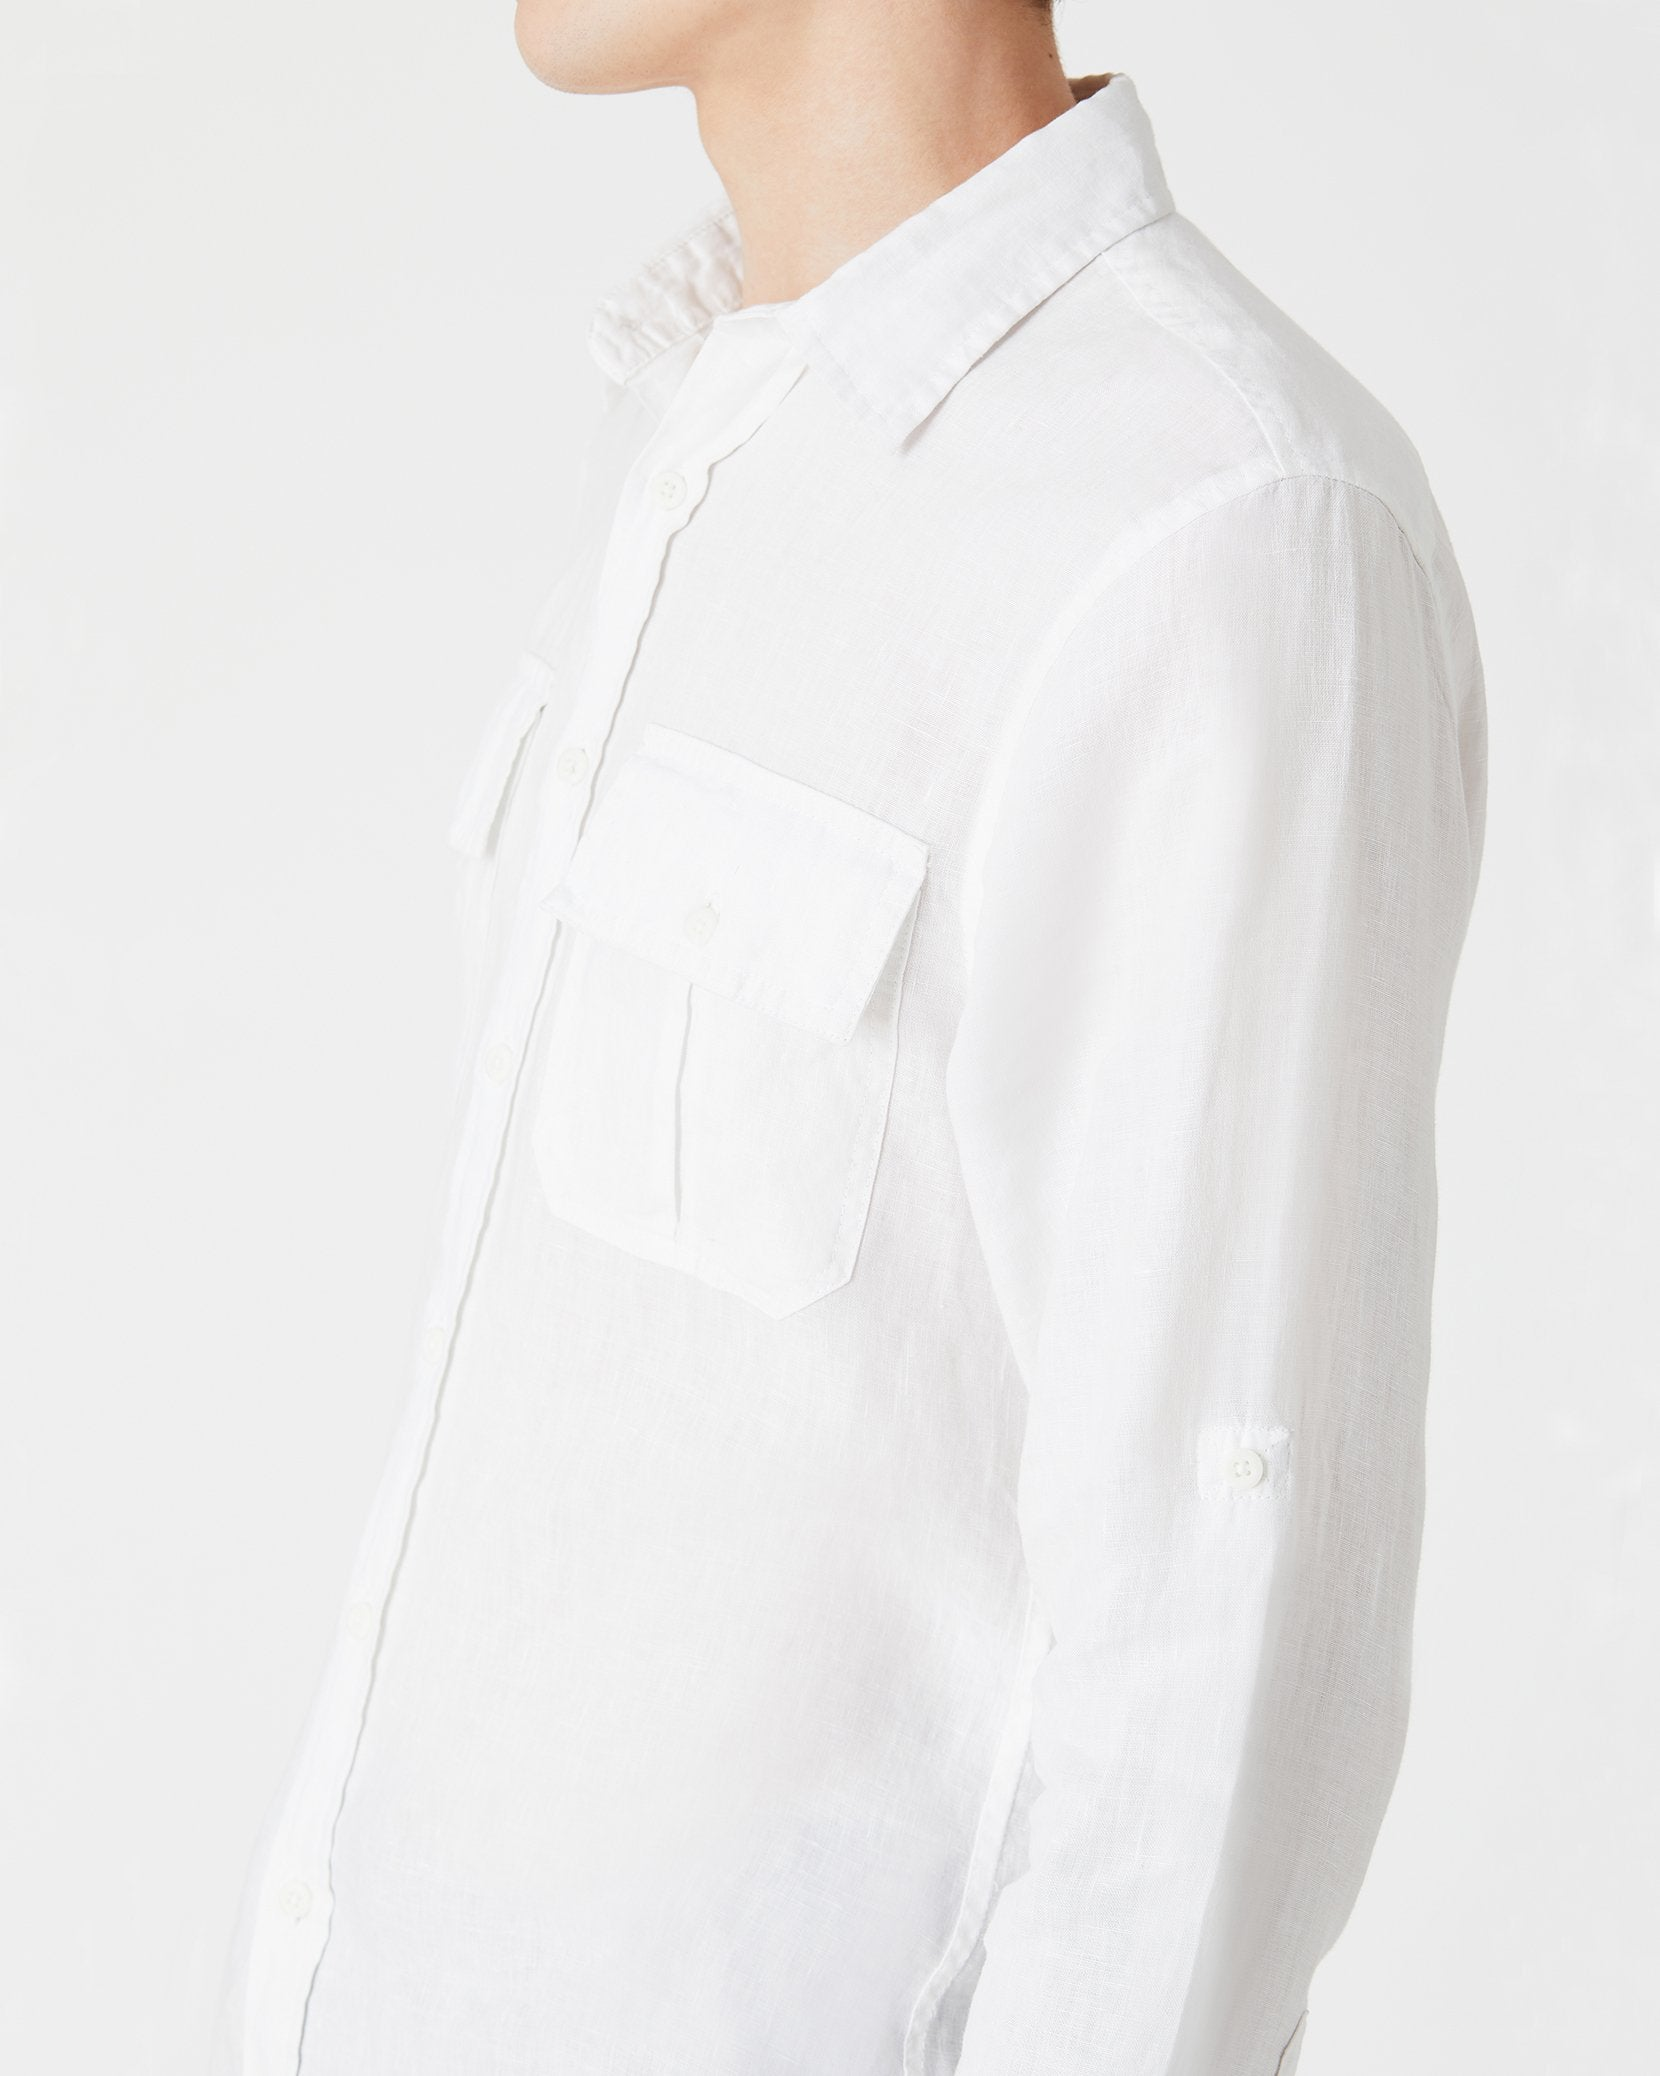 Garret Linen Shirt in White - 4 - Onia